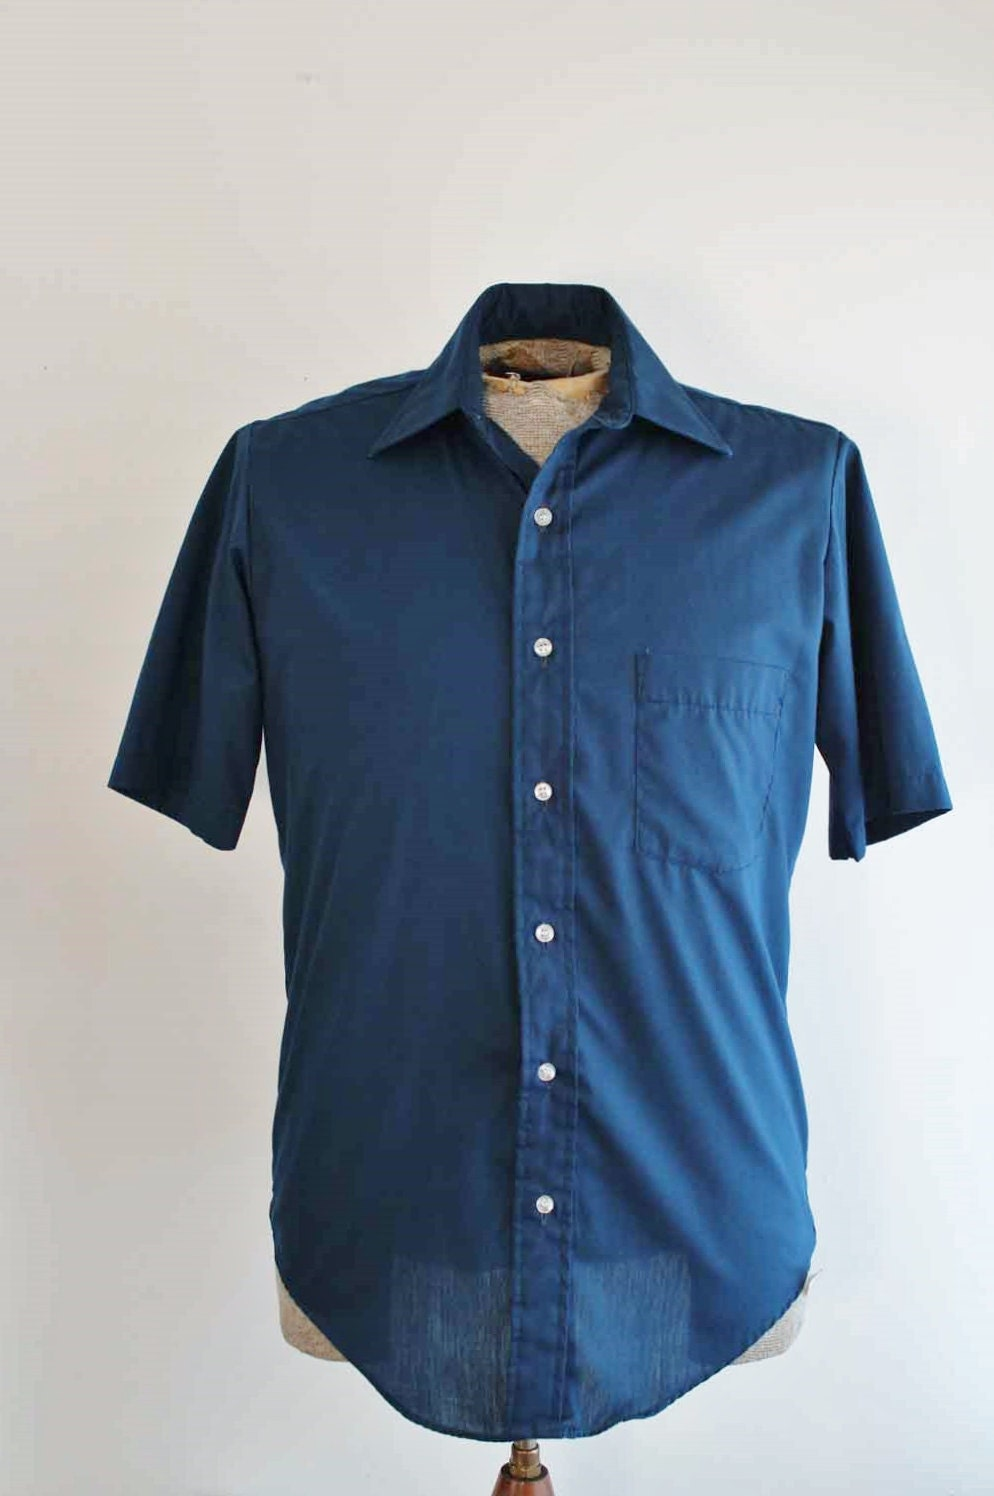 Mens Basic Navy Blue Button Down Vintage Shirt Size 15 By